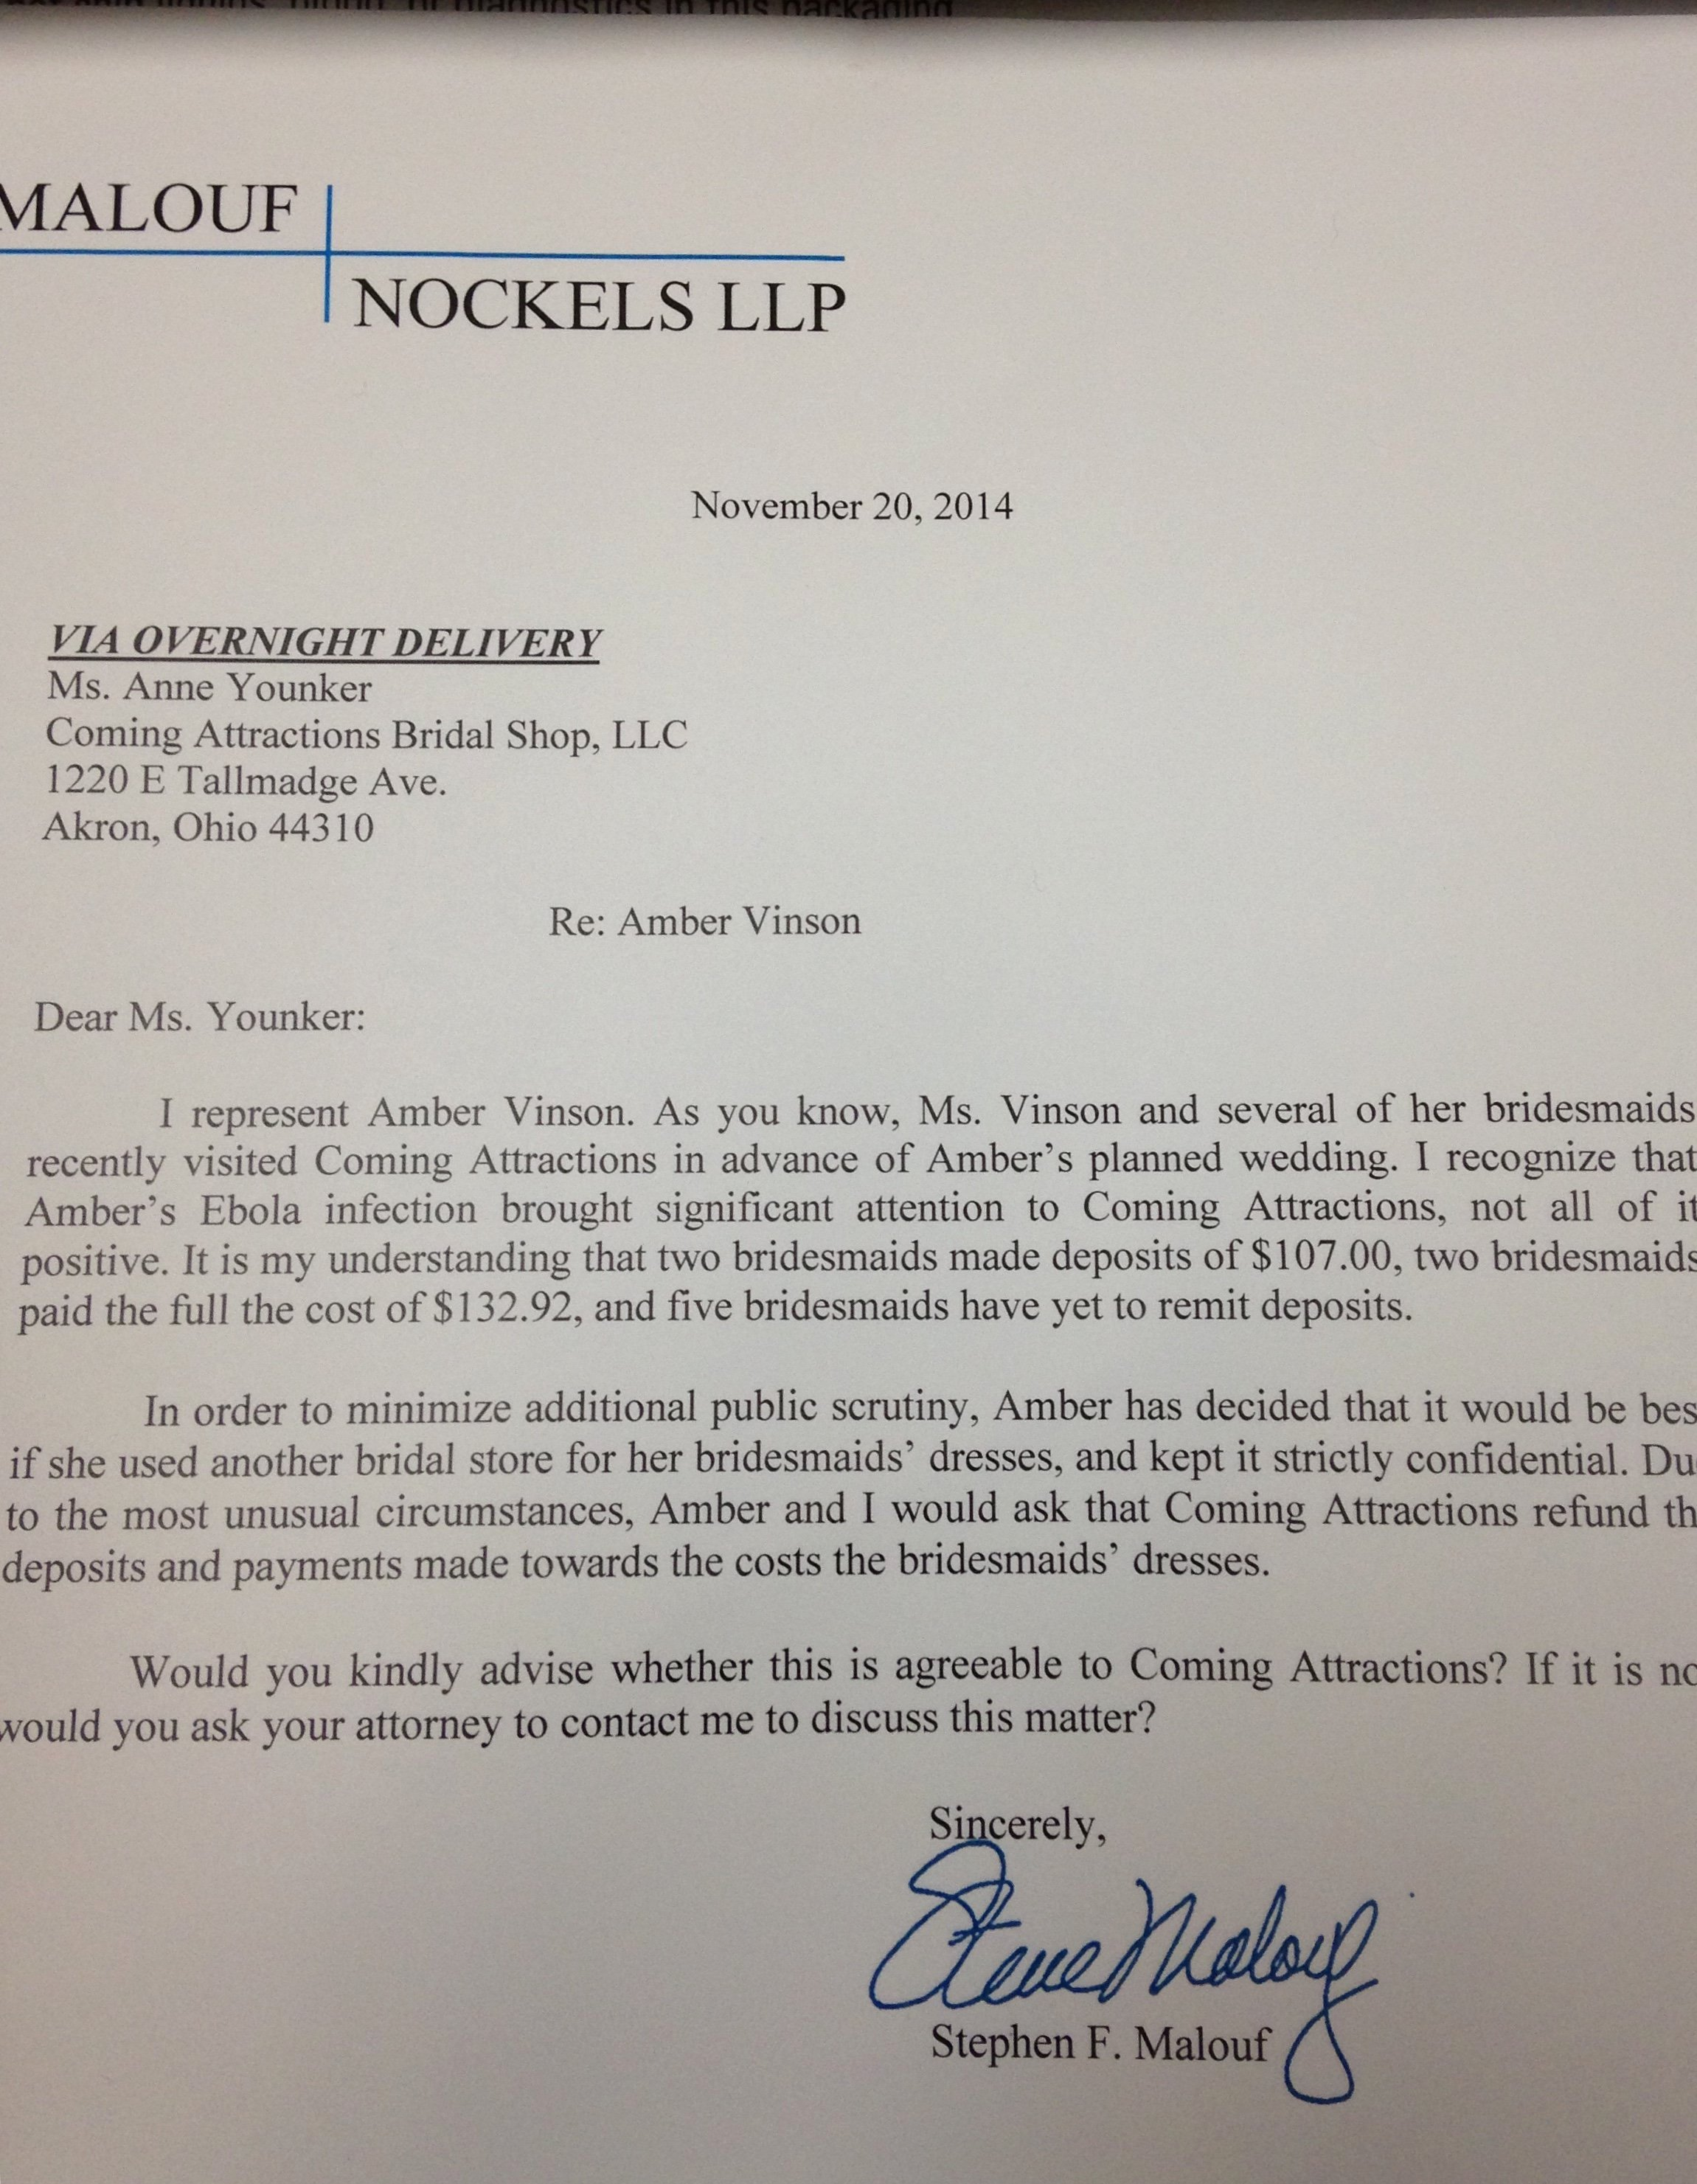 Payment Shock Letter Luxury Bridal Shop Owner On Amber Vinson's Refund Request 'it is